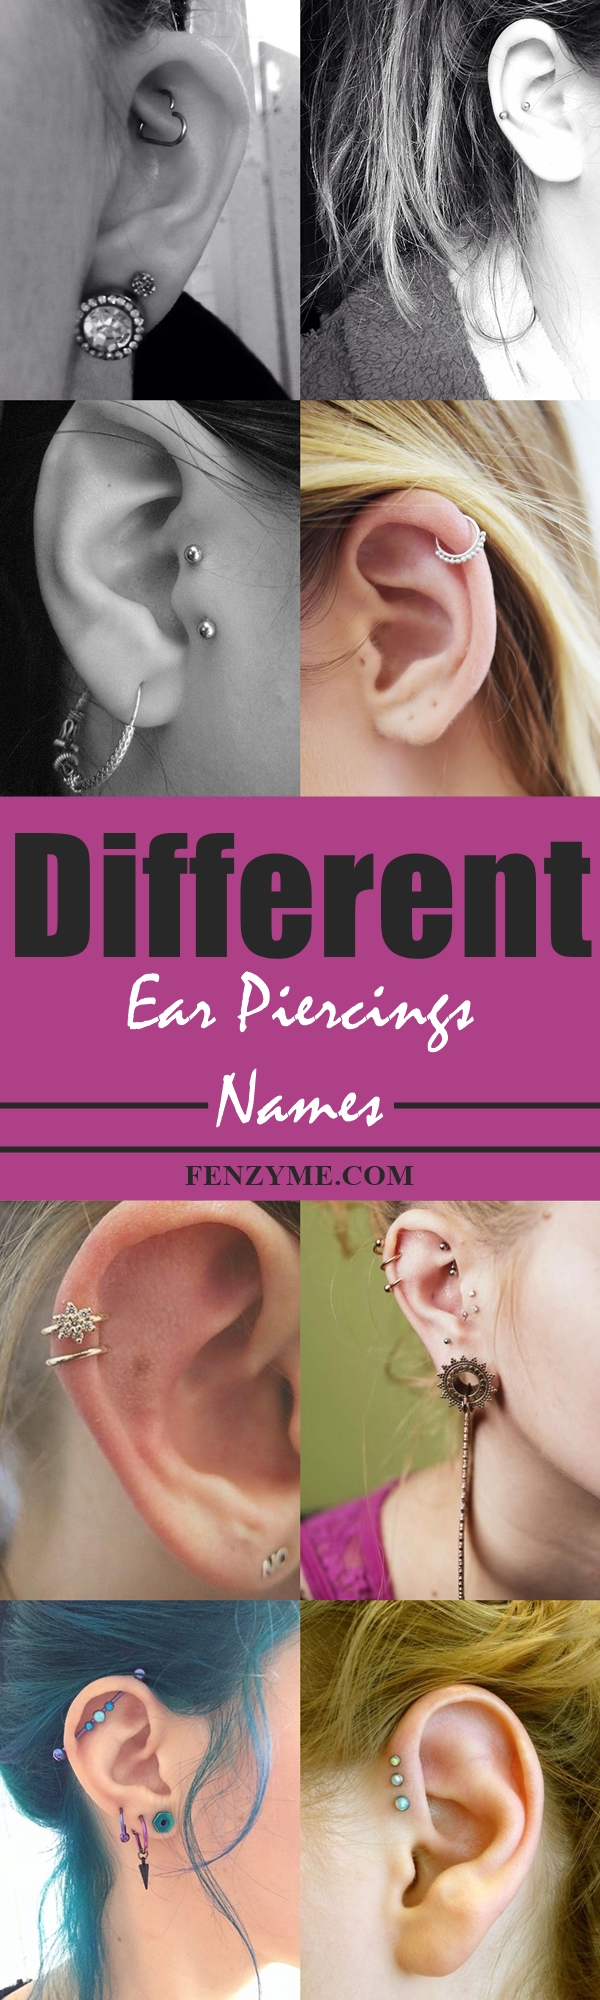 Different ear piercing names - Where to buy a modded xbox